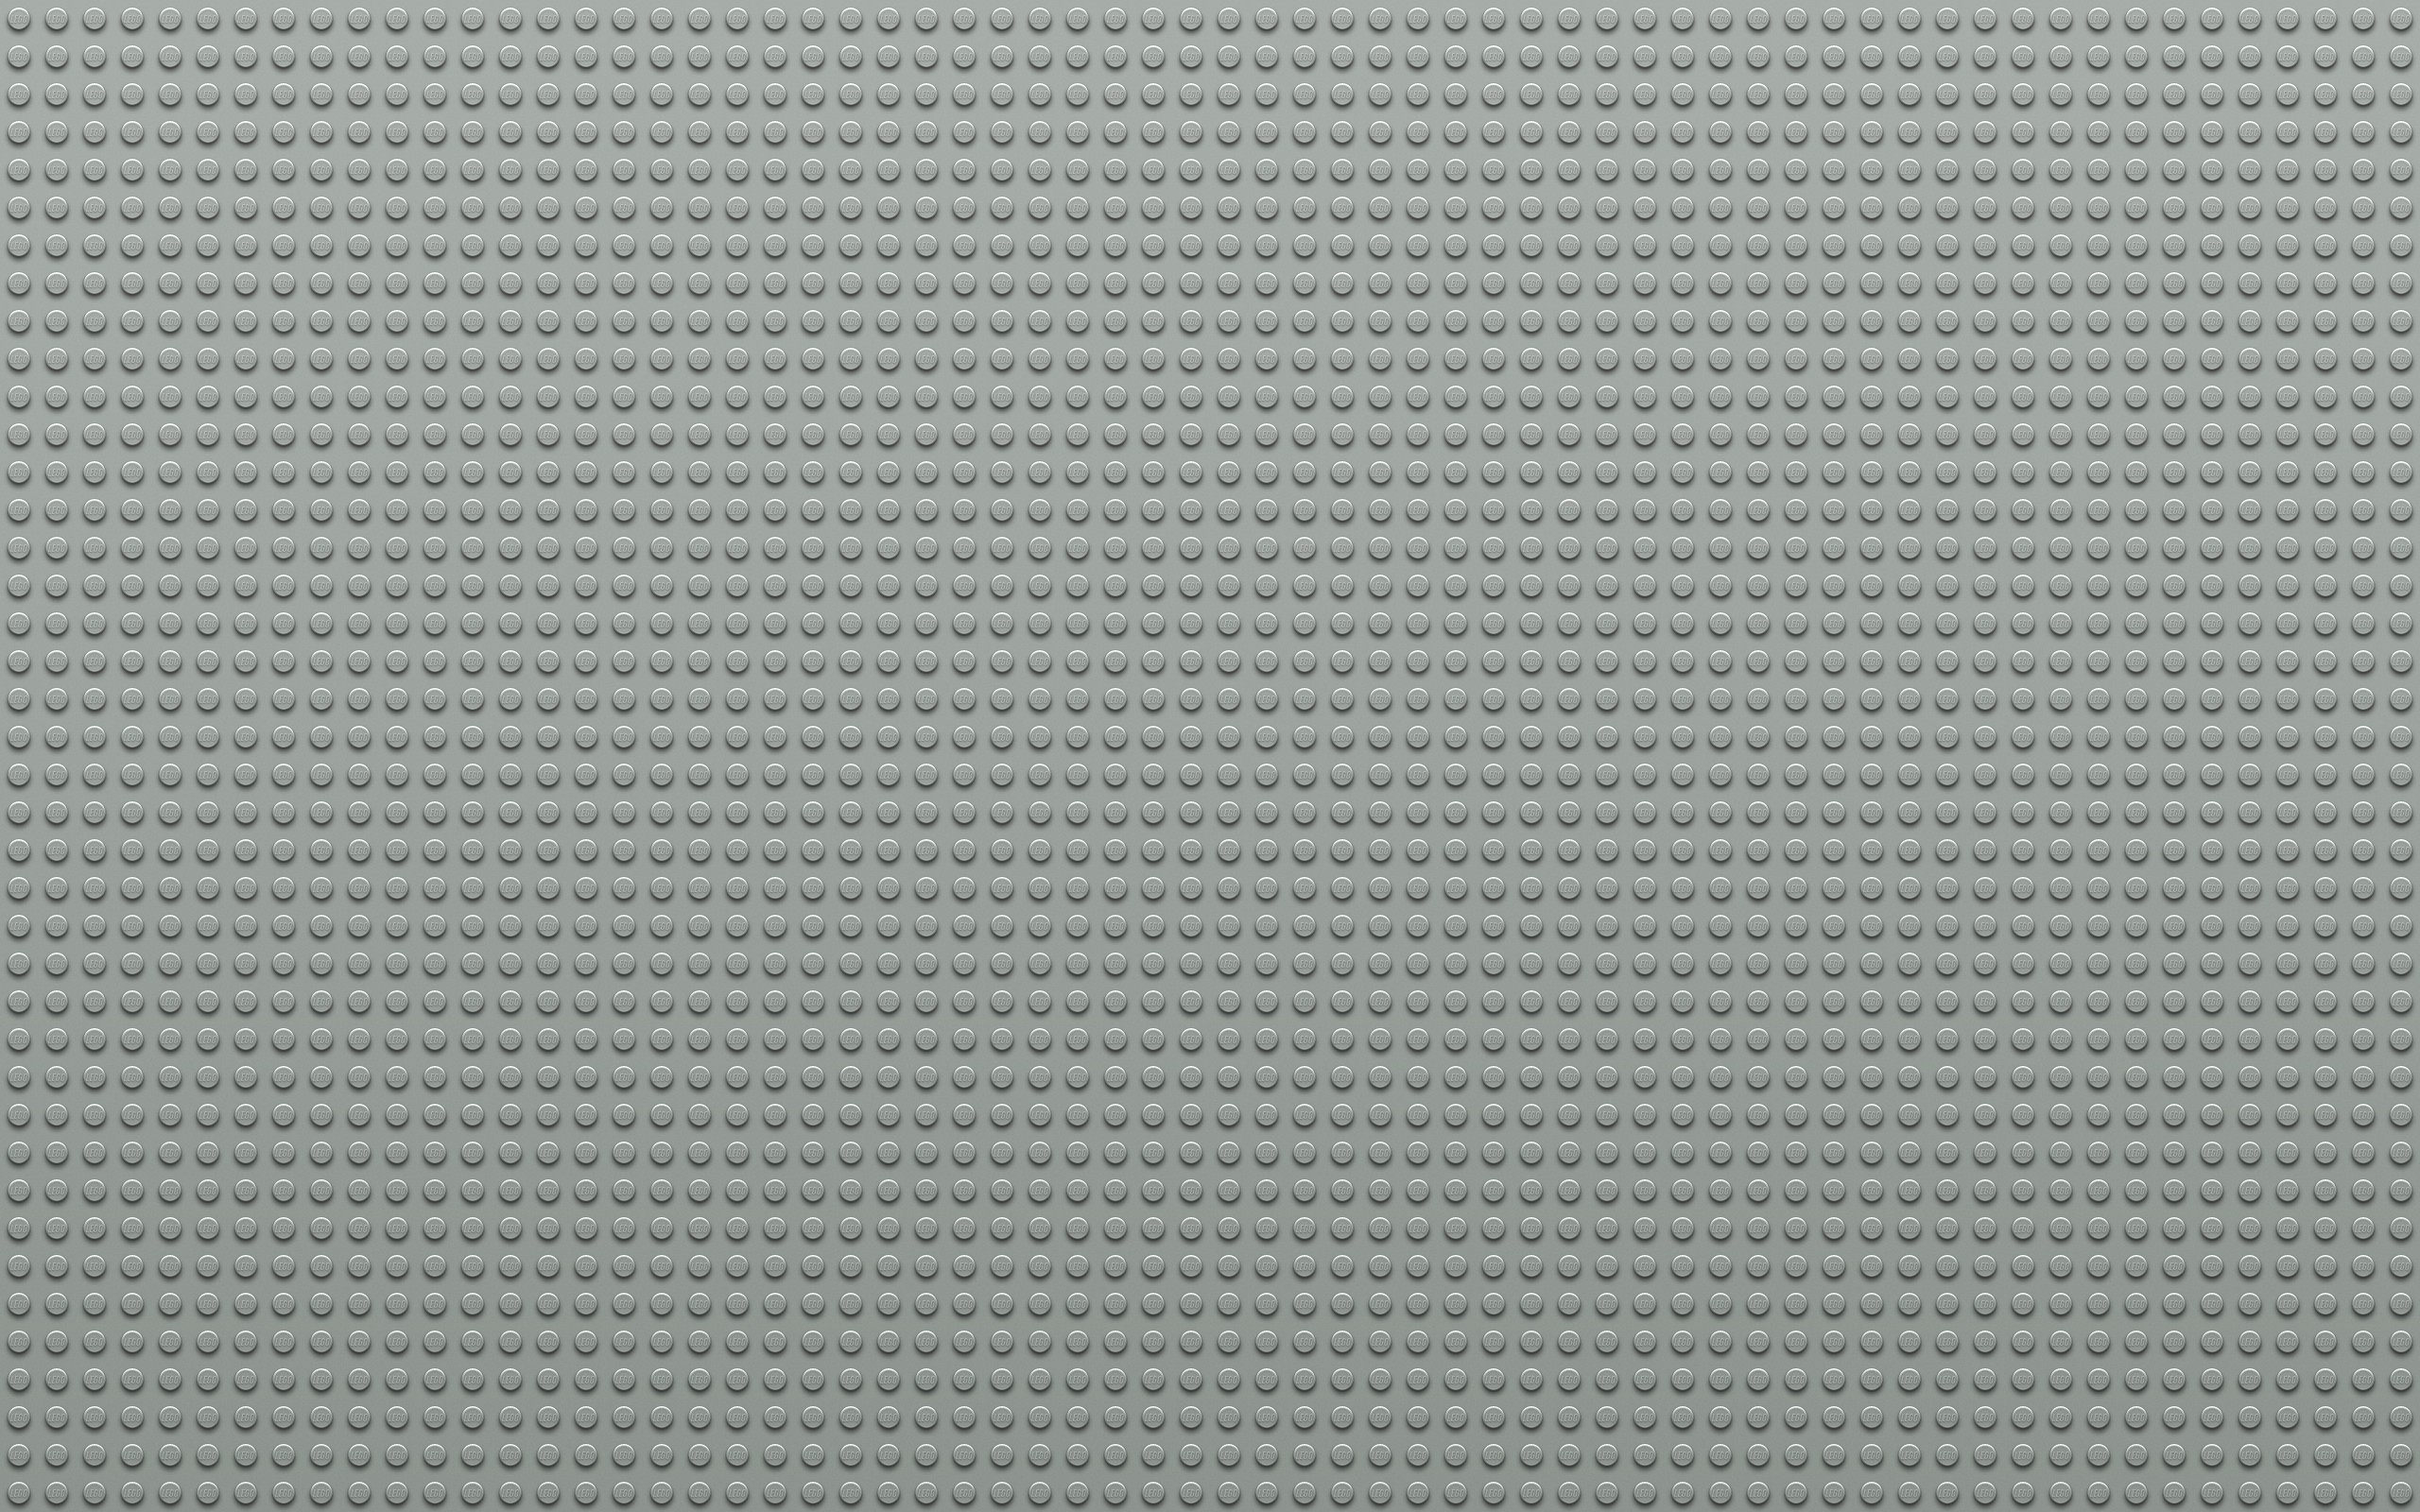 2560x1600  Wallpaper lego, points, circles, light gray